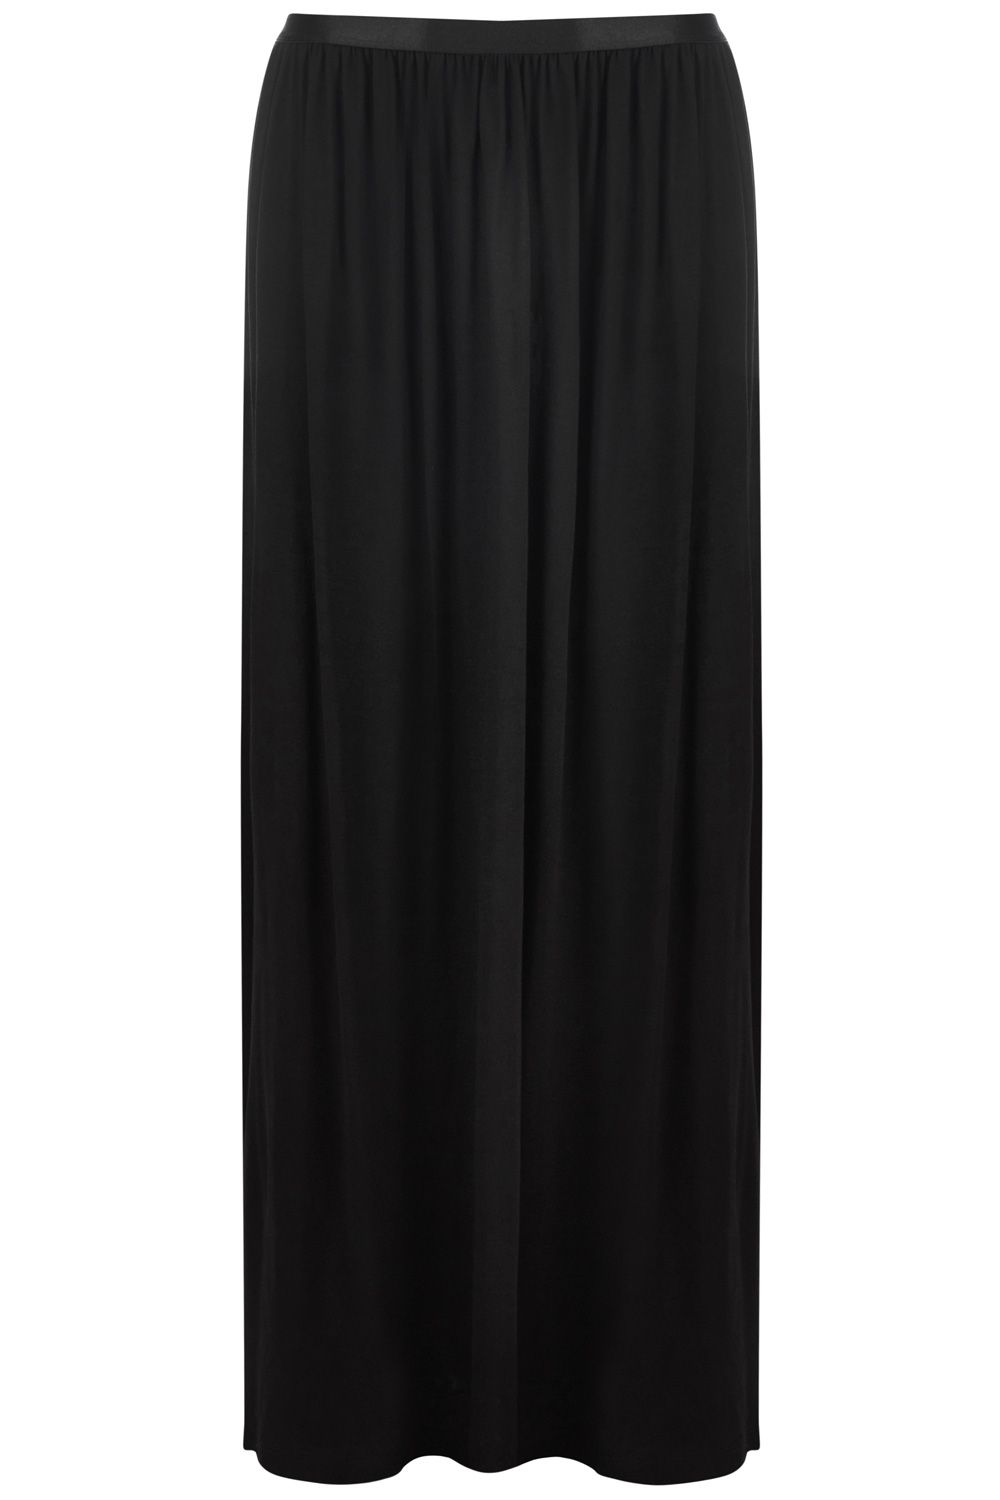 Satin elastic maxi skirt